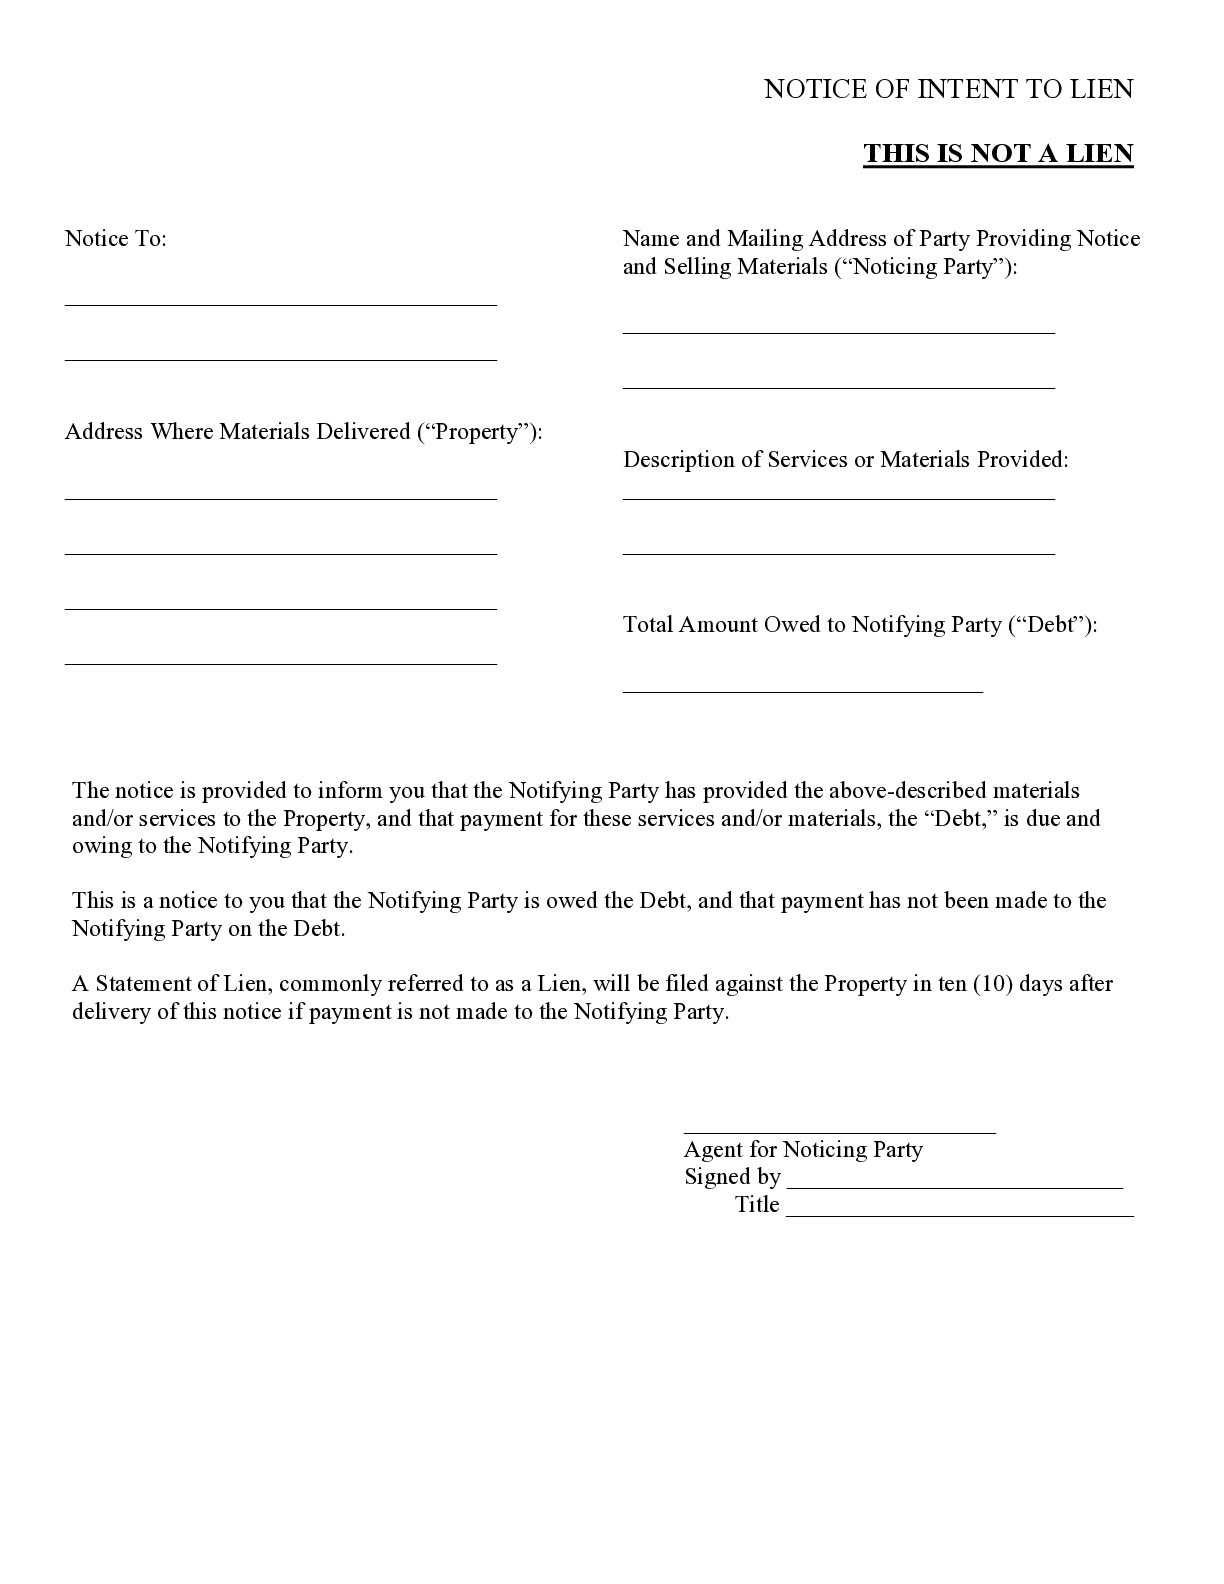 Washington Notice Of Intent To Lien Form